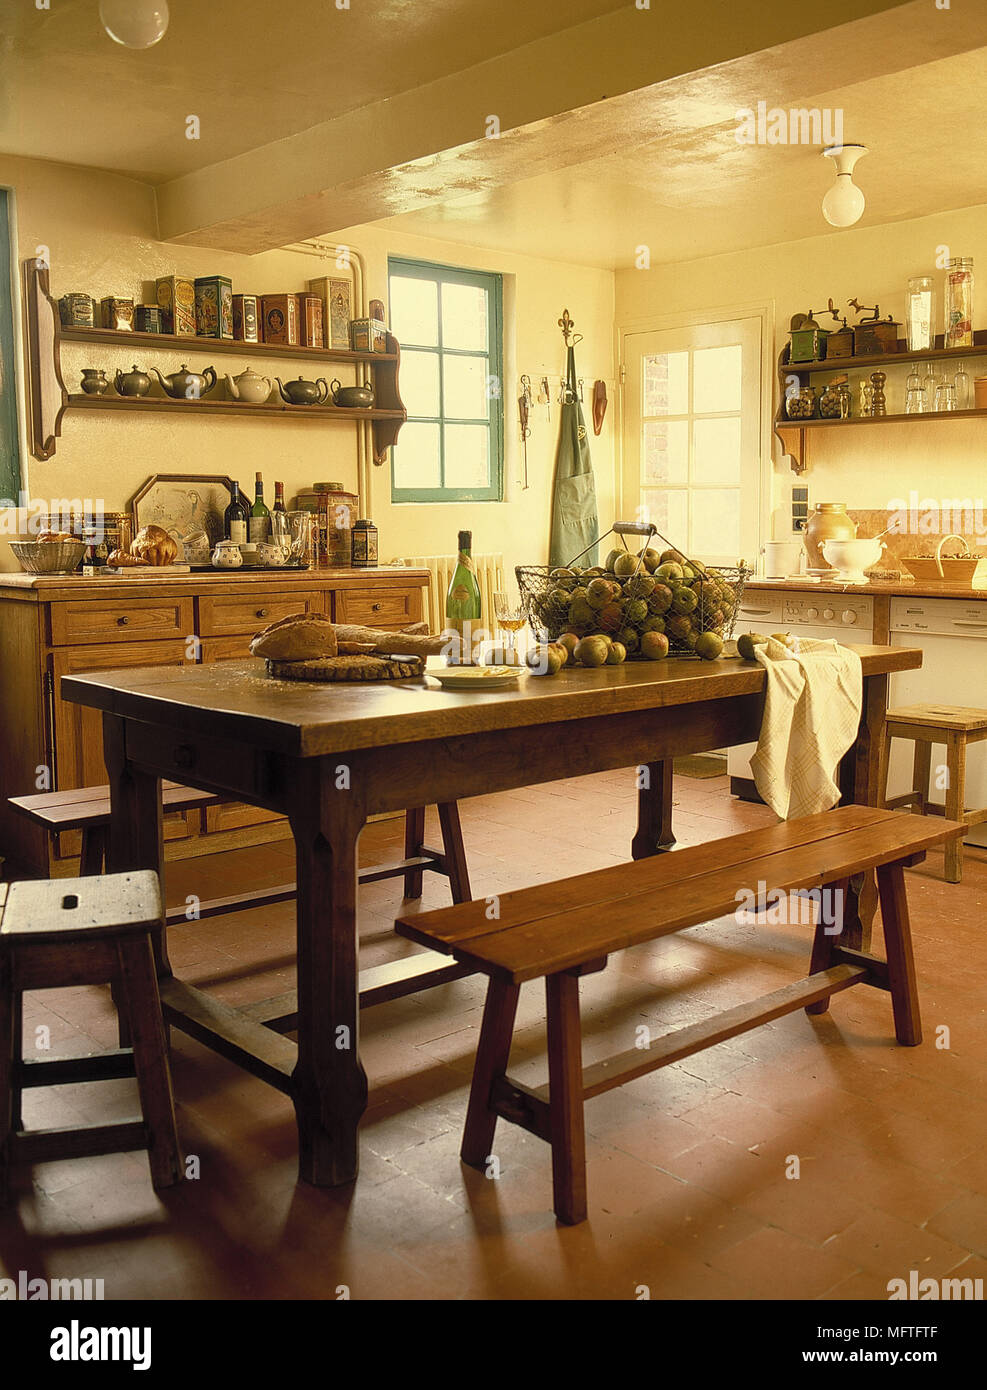 Traditional Dining Room Yellow Walls Wood Units Filled Shelves Table Bench Stools Interiors Kitchens Country Pendant Ceiling Lights Wine Bottles Kitc